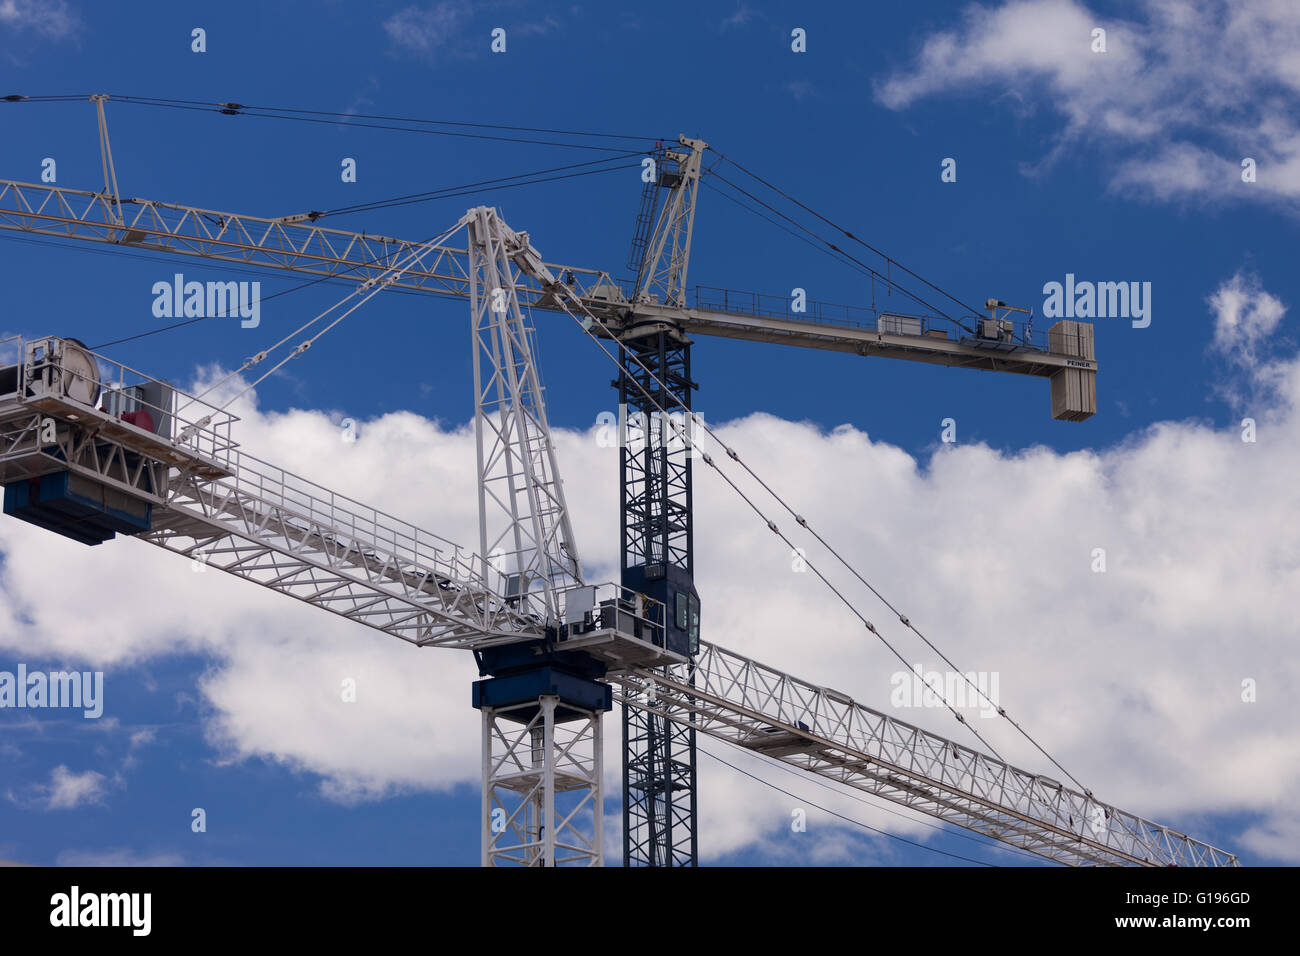 Two cranes work on a constuction site in Burlington Ont, on May 9, 2016. Stock Photo